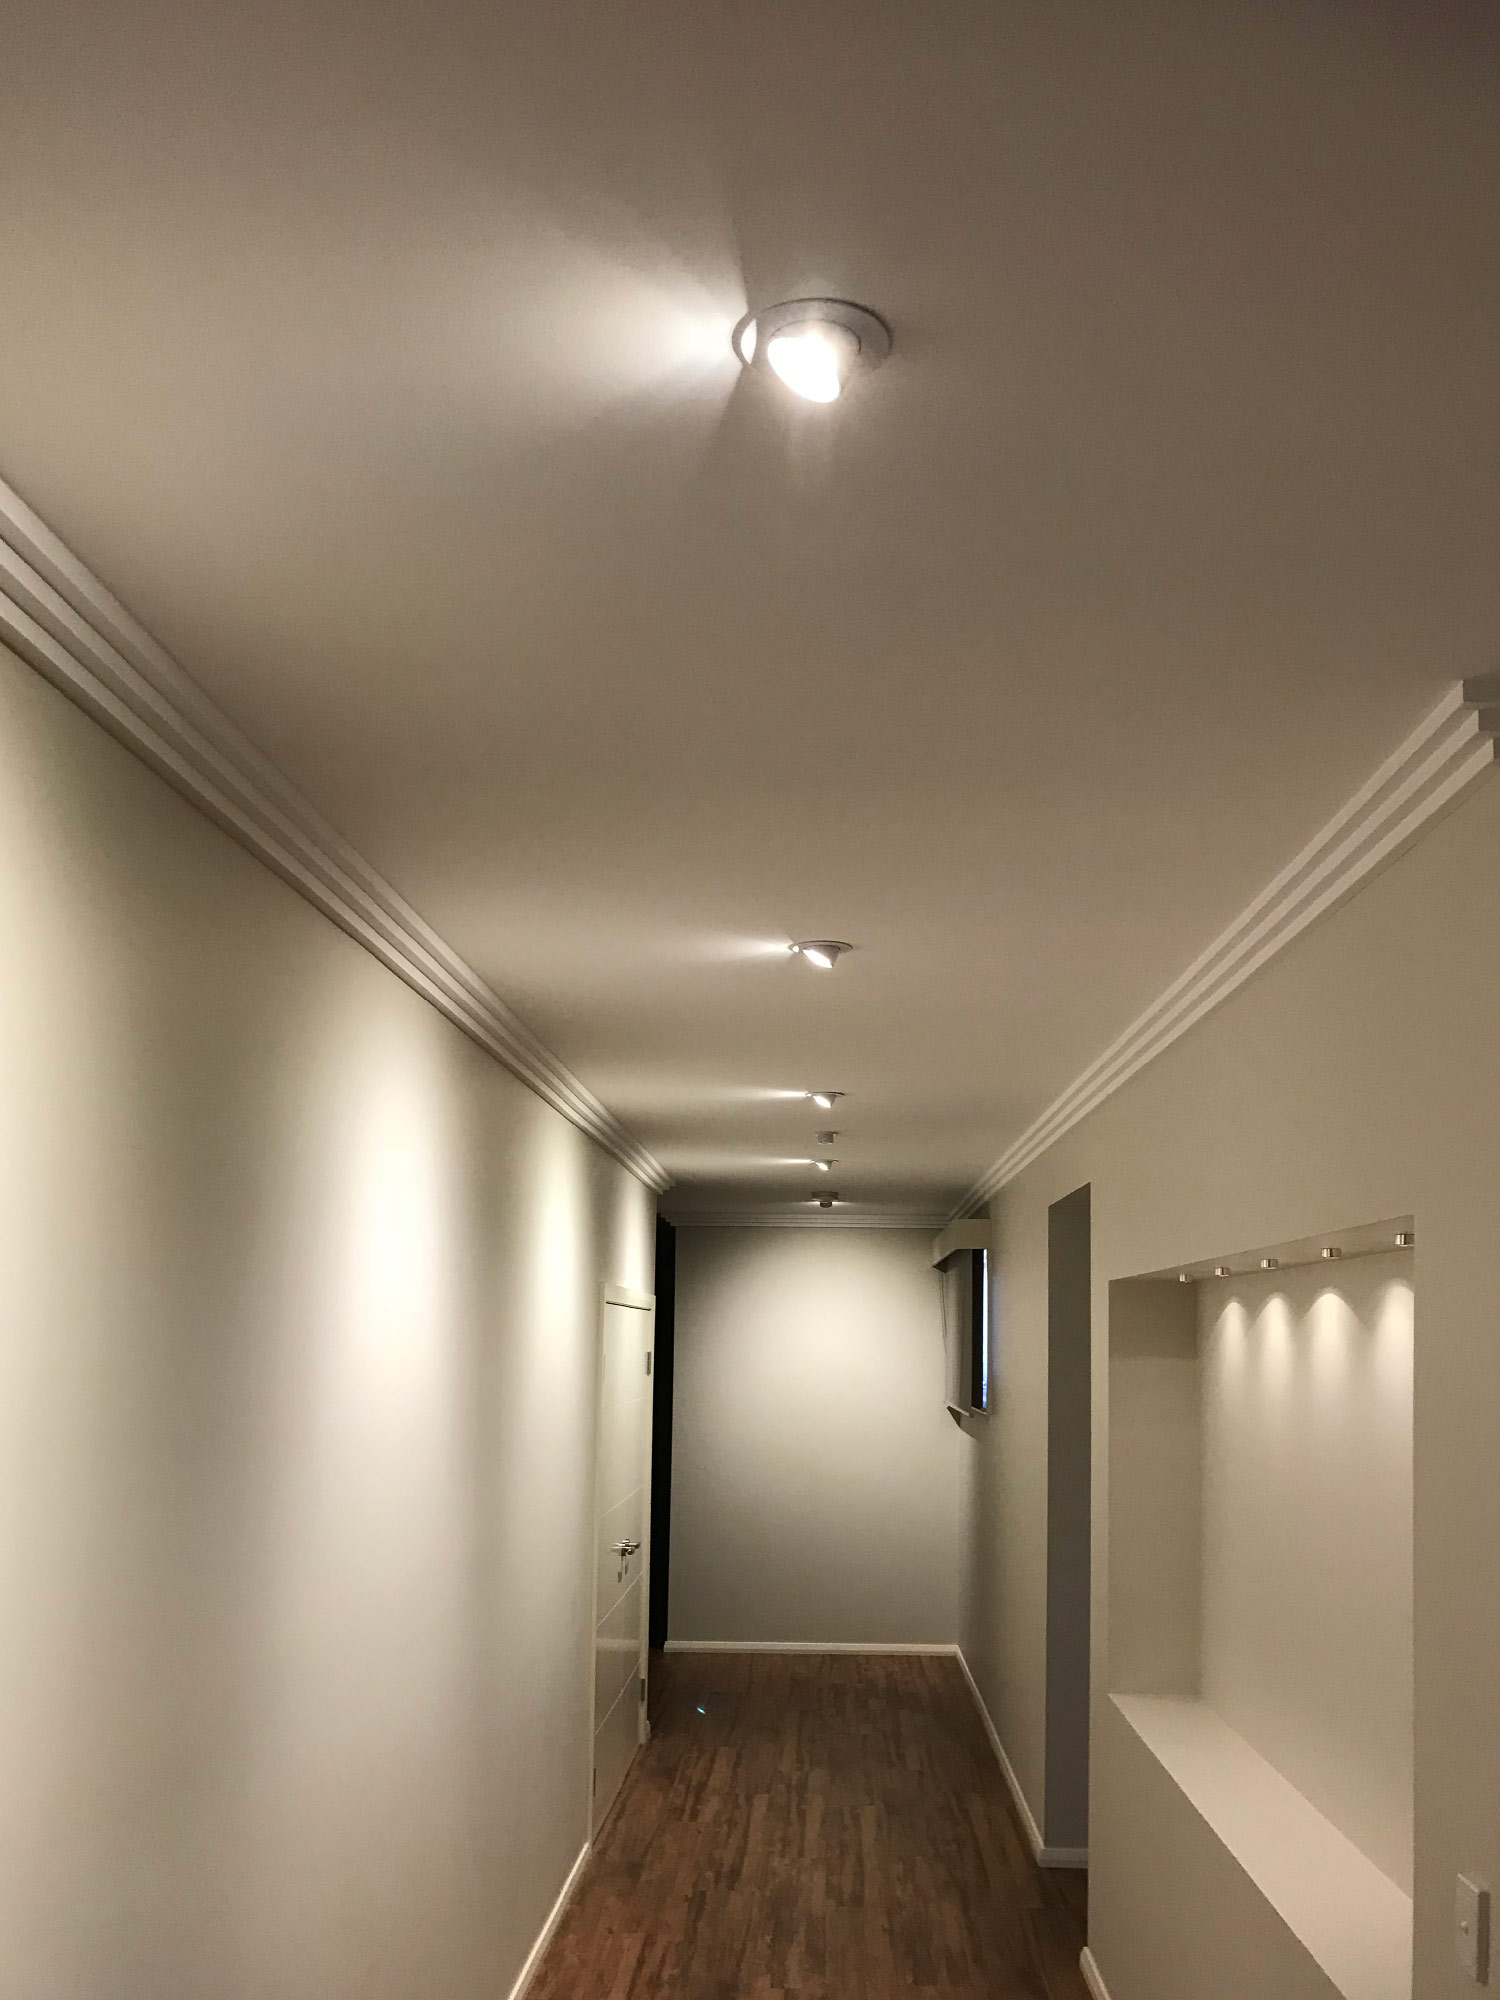 lights in a halway installed by nps electricians